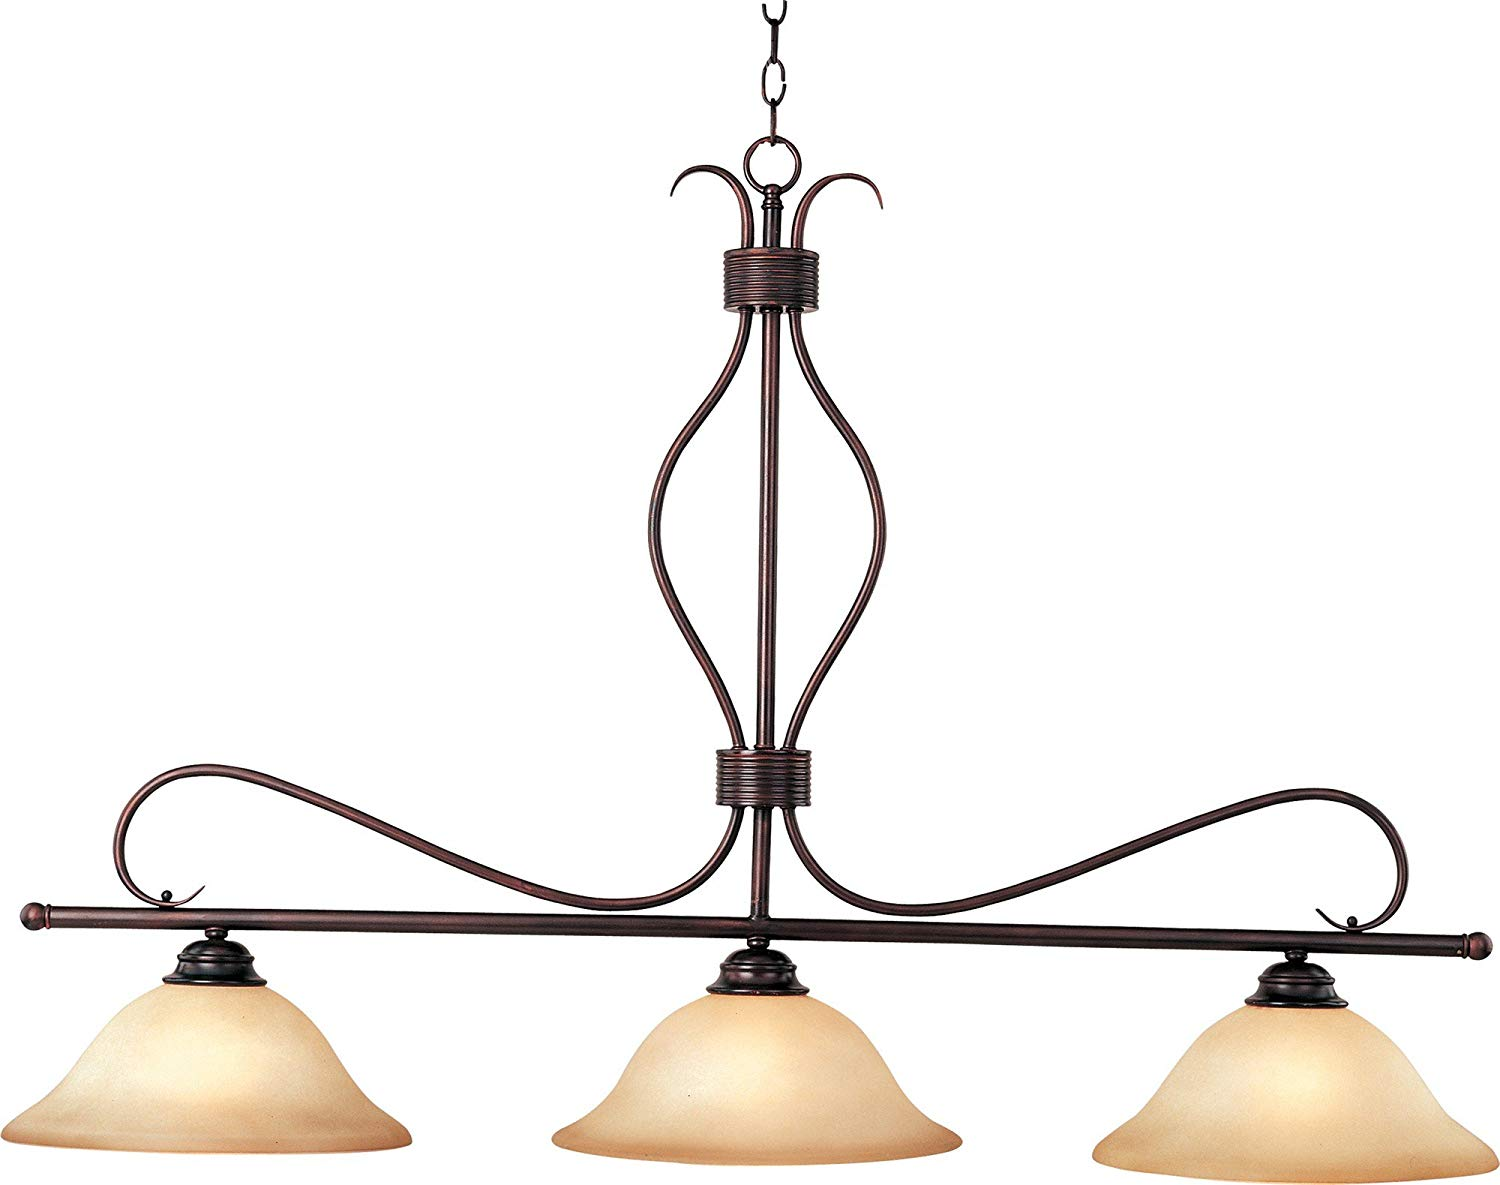 maxim basix light pendant oil rubbed bronze keru accent table finish wilshire glass incandescent bulb max dry safety rating living room with storage pottery barn long console